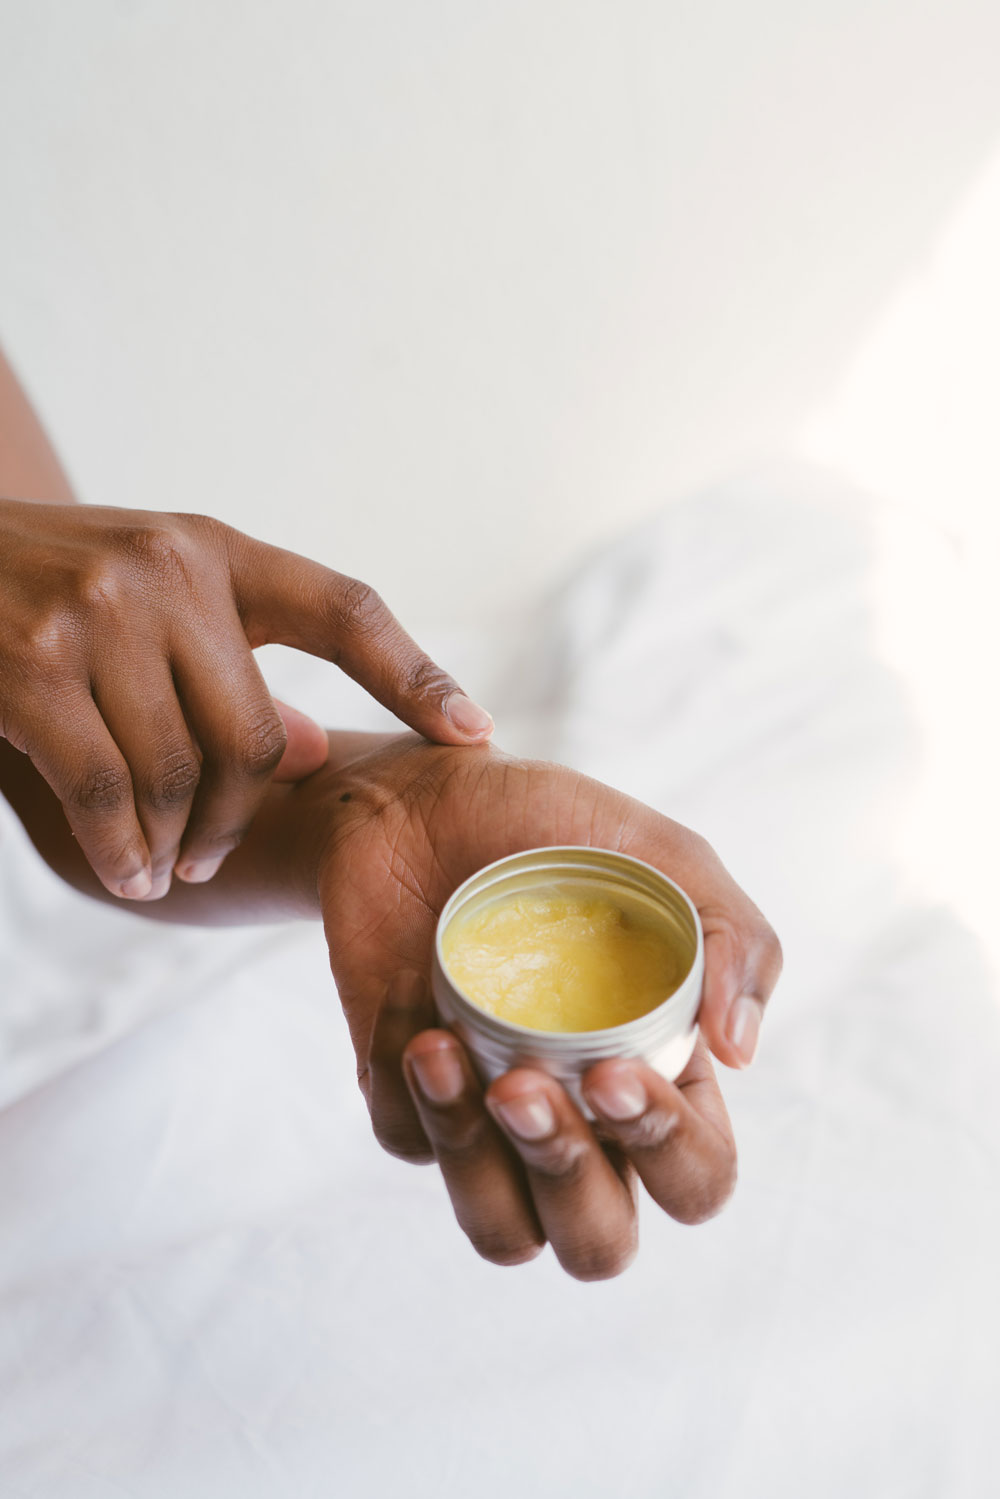 person-holding-a-hand-cream-3059398